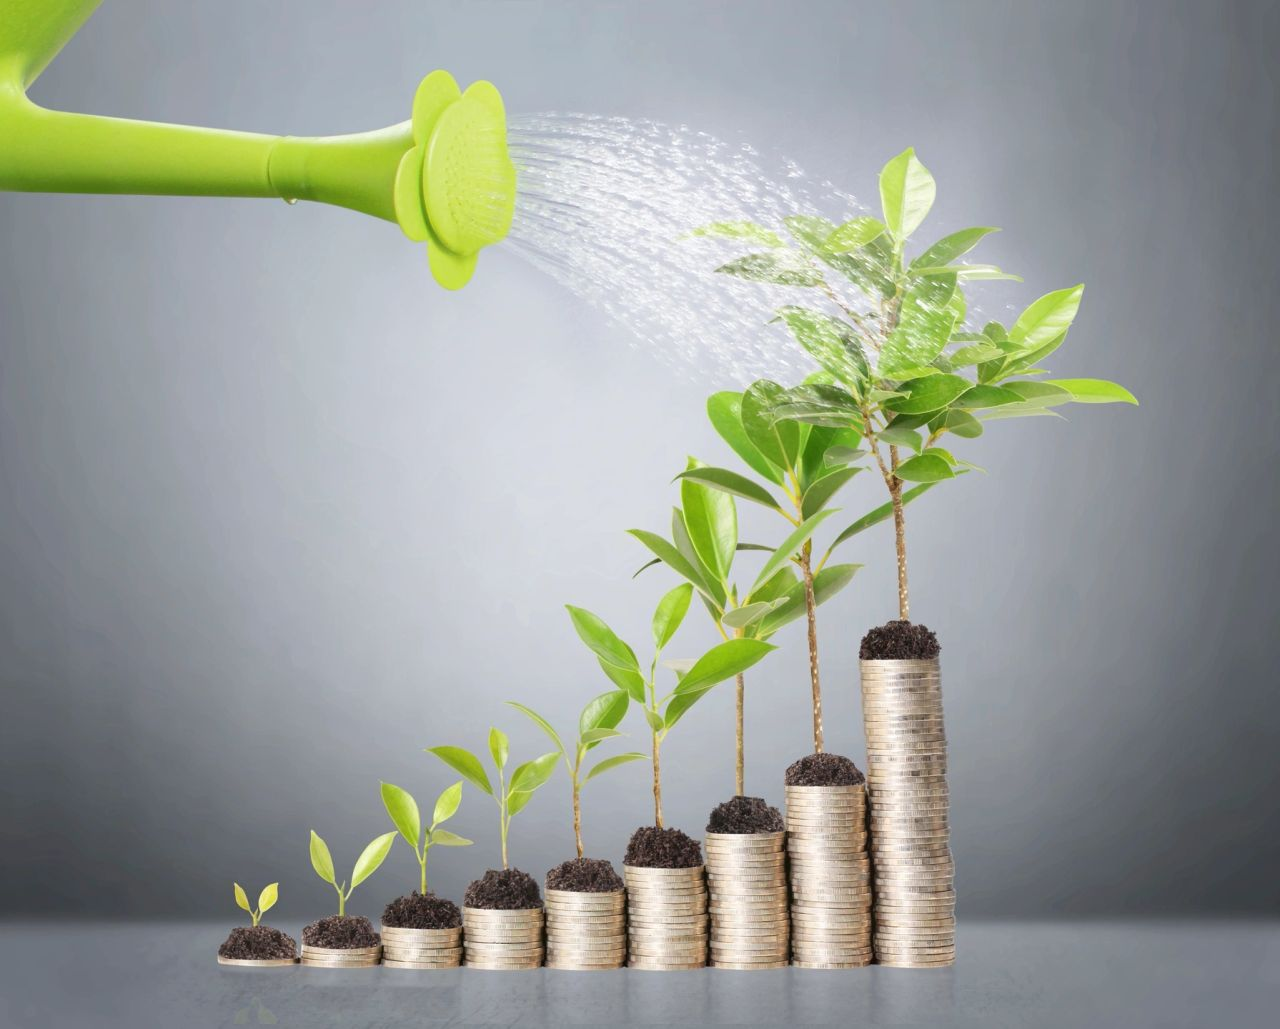 Importance of creating a more purposeful investment ecosystem